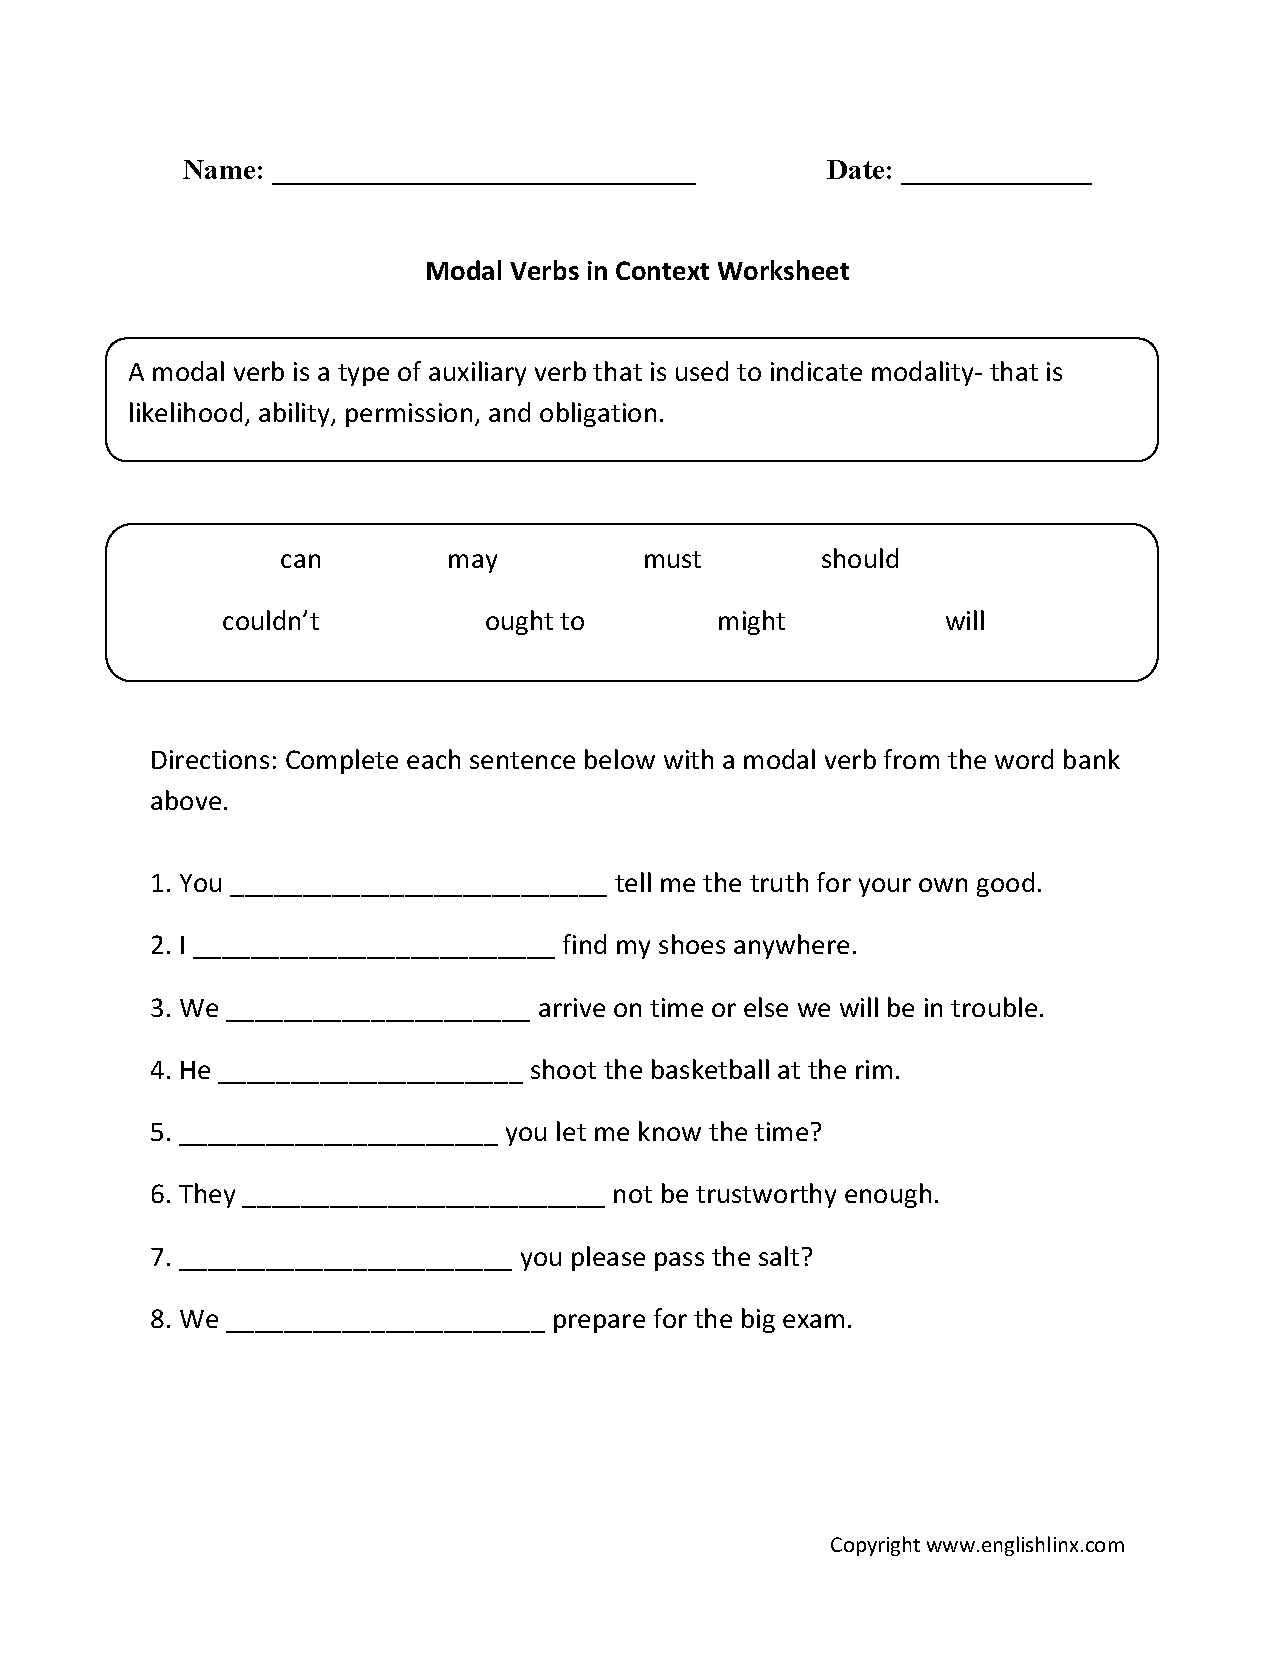 Aldiablosus  Splendid Worksheet On Verb  Coffemix With Licious Englishlinxcom  Verbs Worksheets With Awesome Relapse Worksheets Also English Grammar For Grade  Worksheets In Addition Algebra Worksheets Online And Prime Numbers Up To  Worksheet As Well As Congruency Worksheets Additionally Literacy Ks Worksheets From Coffemixcom With Aldiablosus  Licious Worksheet On Verb  Coffemix With Awesome Englishlinxcom  Verbs Worksheets And Splendid Relapse Worksheets Also English Grammar For Grade  Worksheets In Addition Algebra Worksheets Online From Coffemixcom